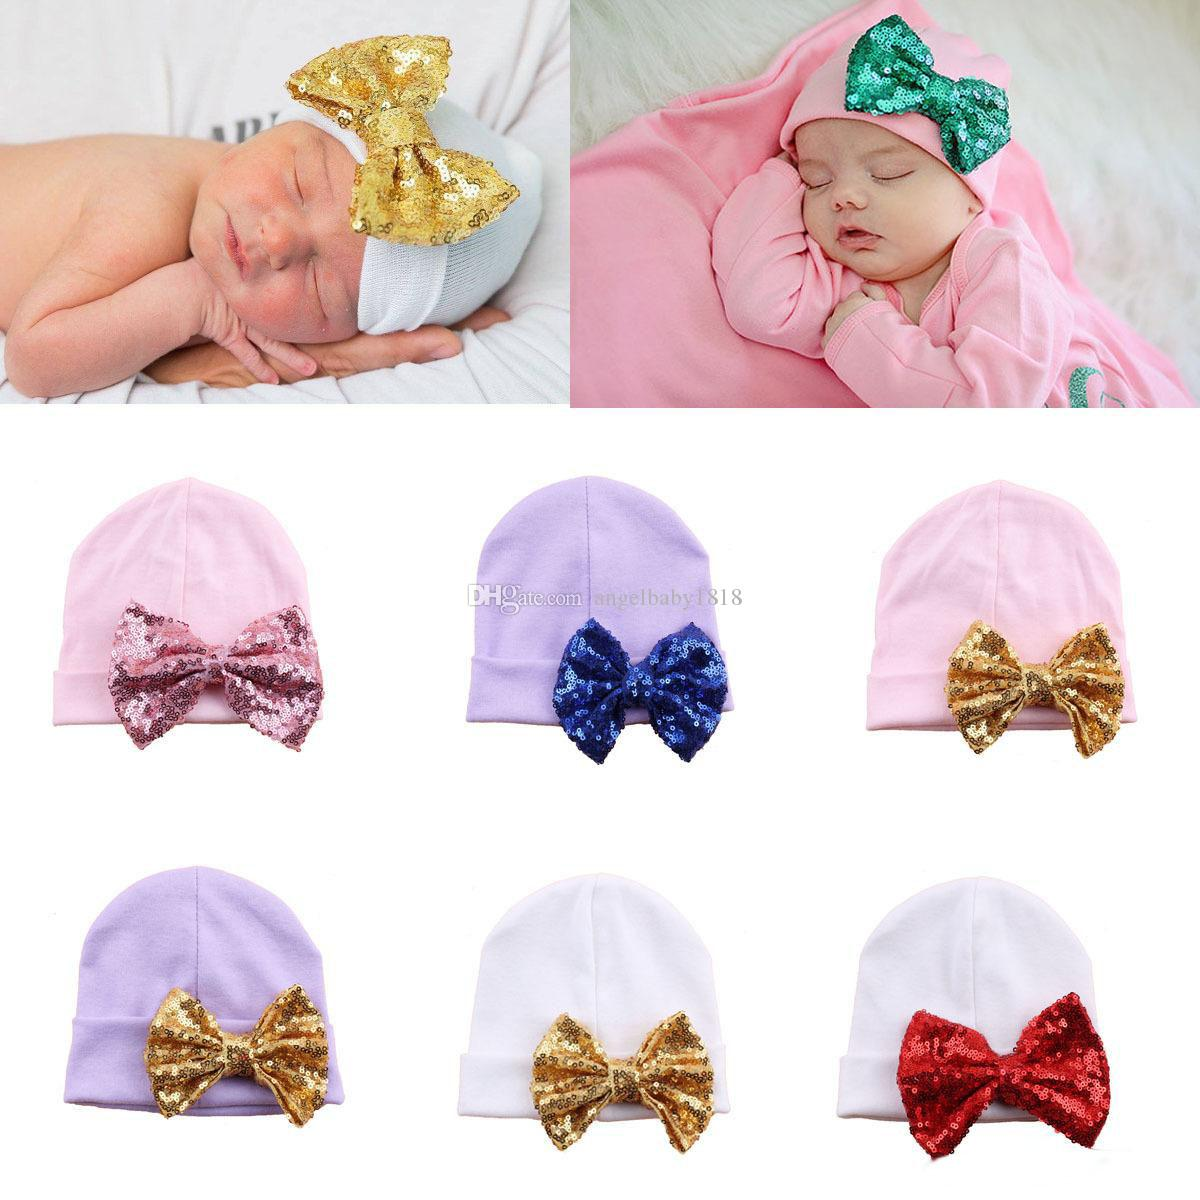 Maternity supplies Hat for newborn Baby Beanie Cute Sequins bow knit hat 2018 Spring Autumn Cotton 0-3months